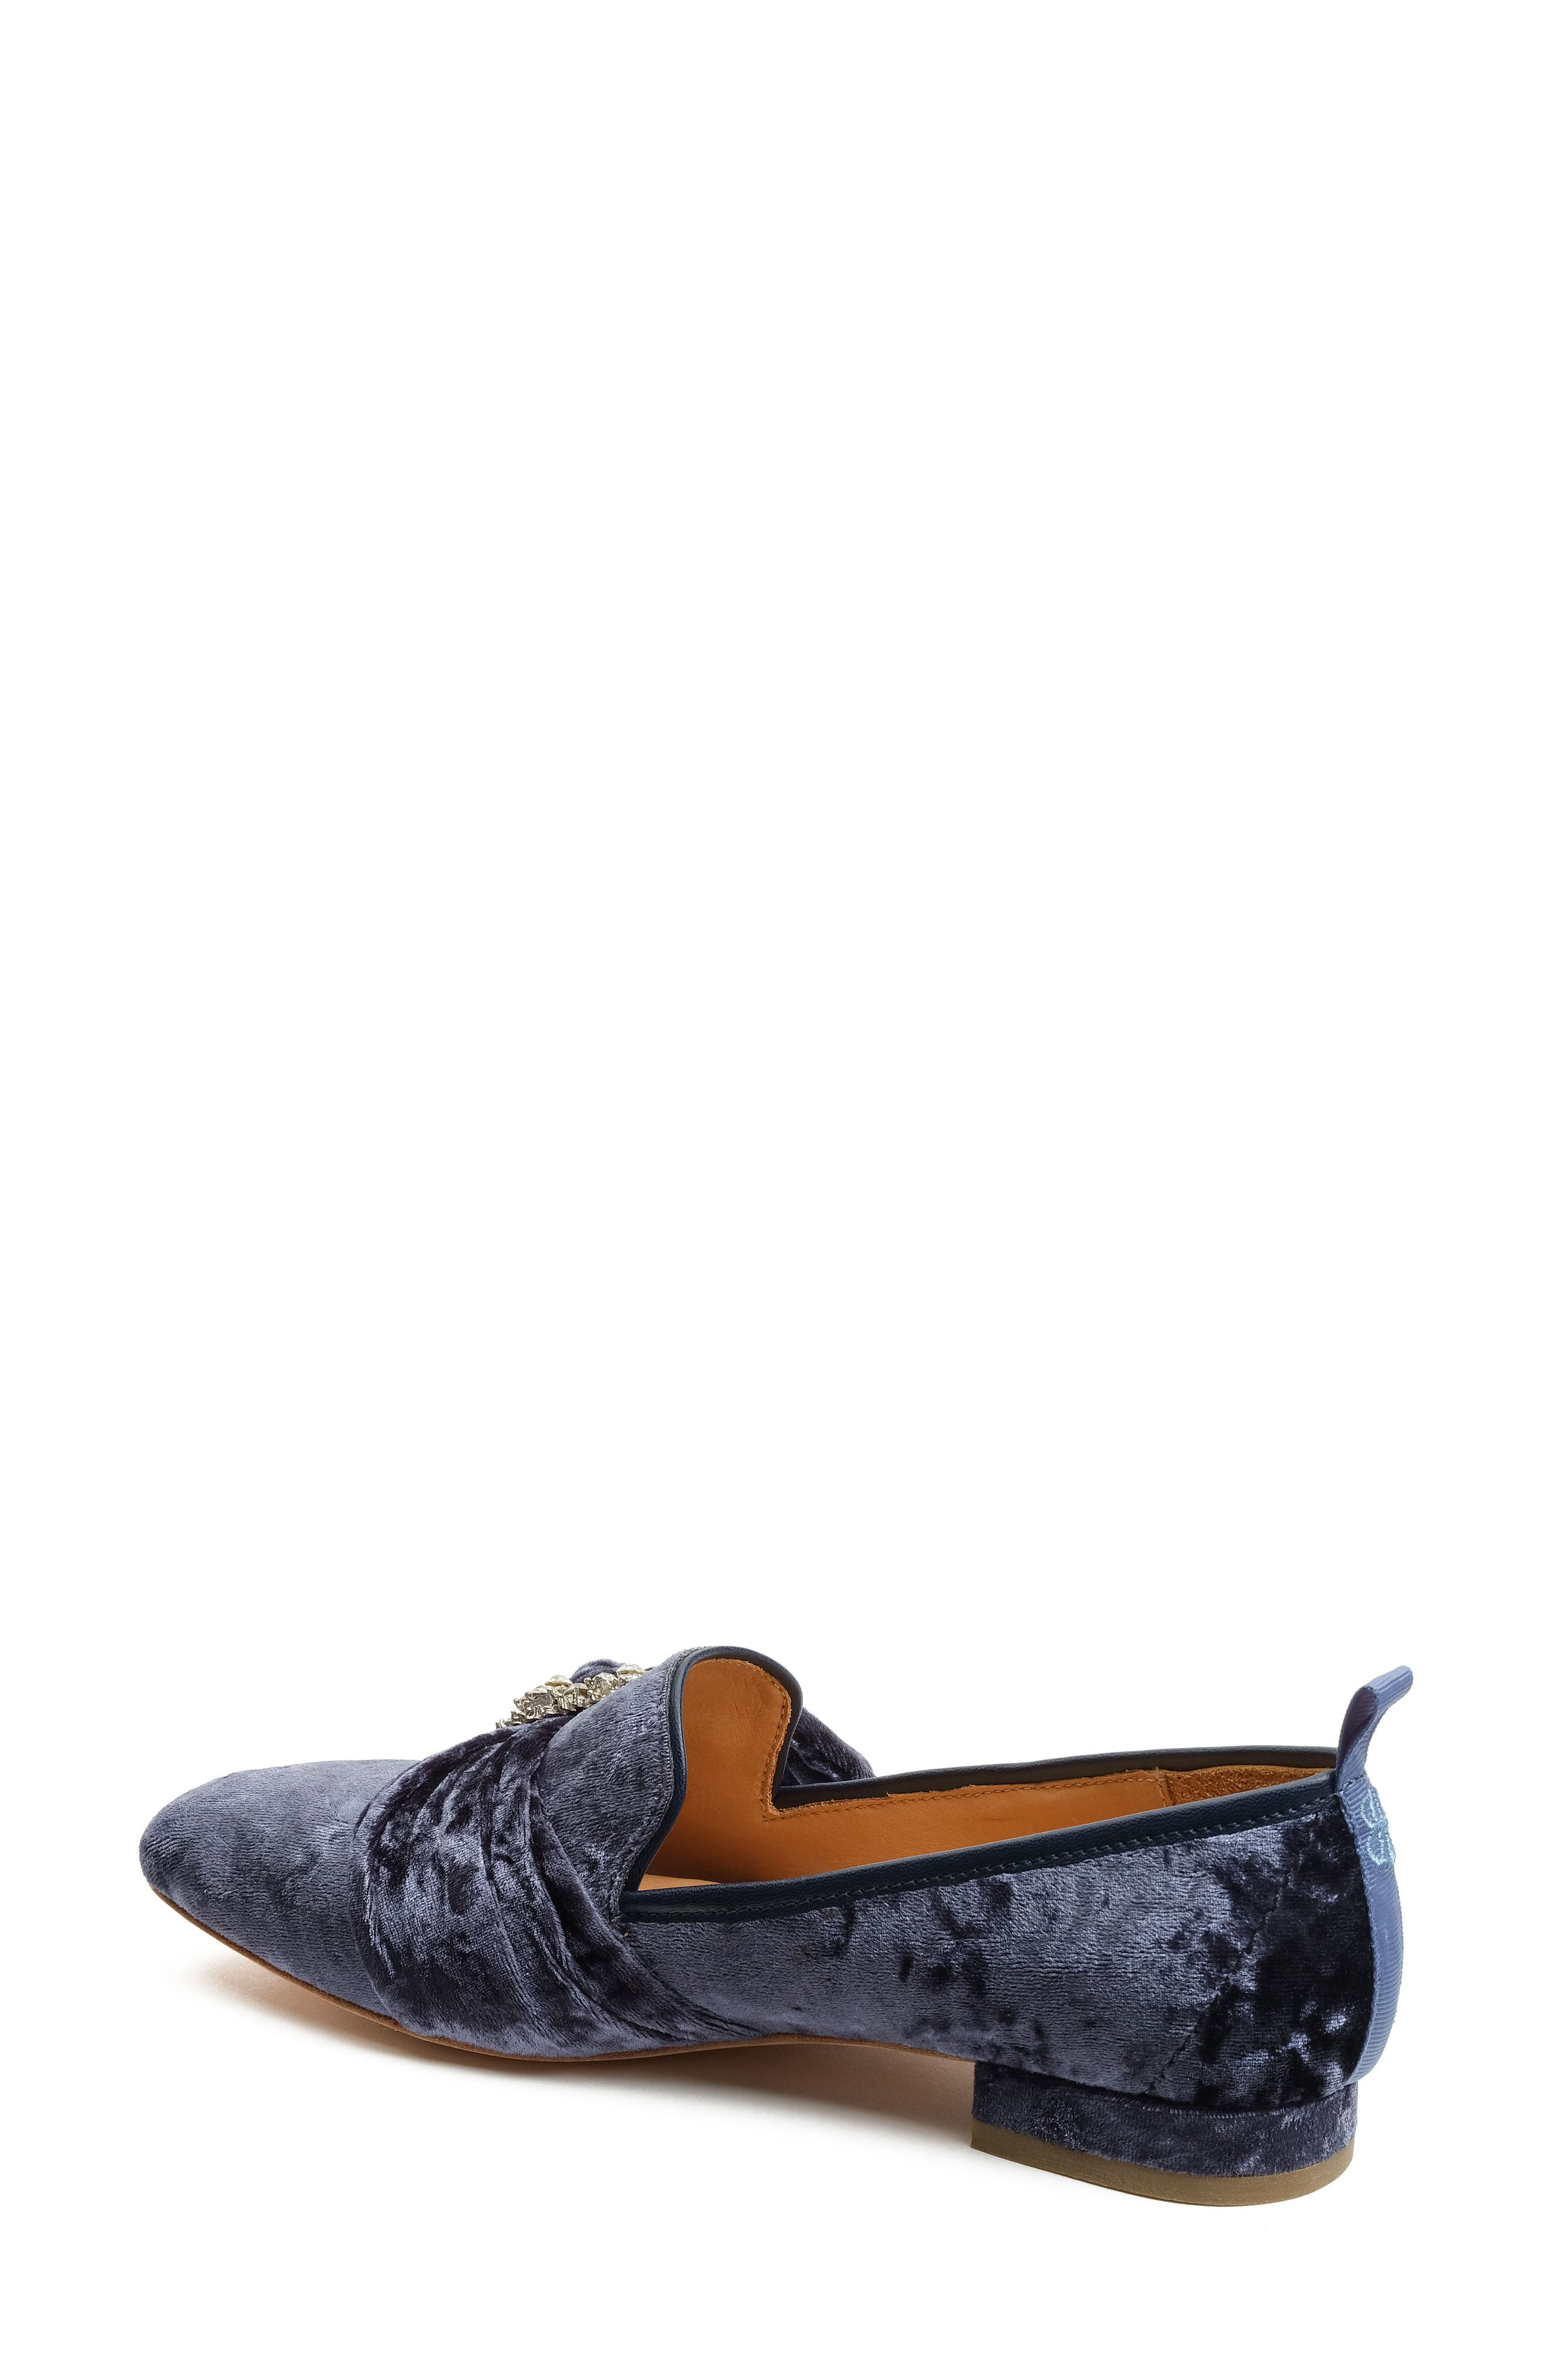 Alternate Image 2  - Bill Blass Laverne Embellished Loafer (Women)